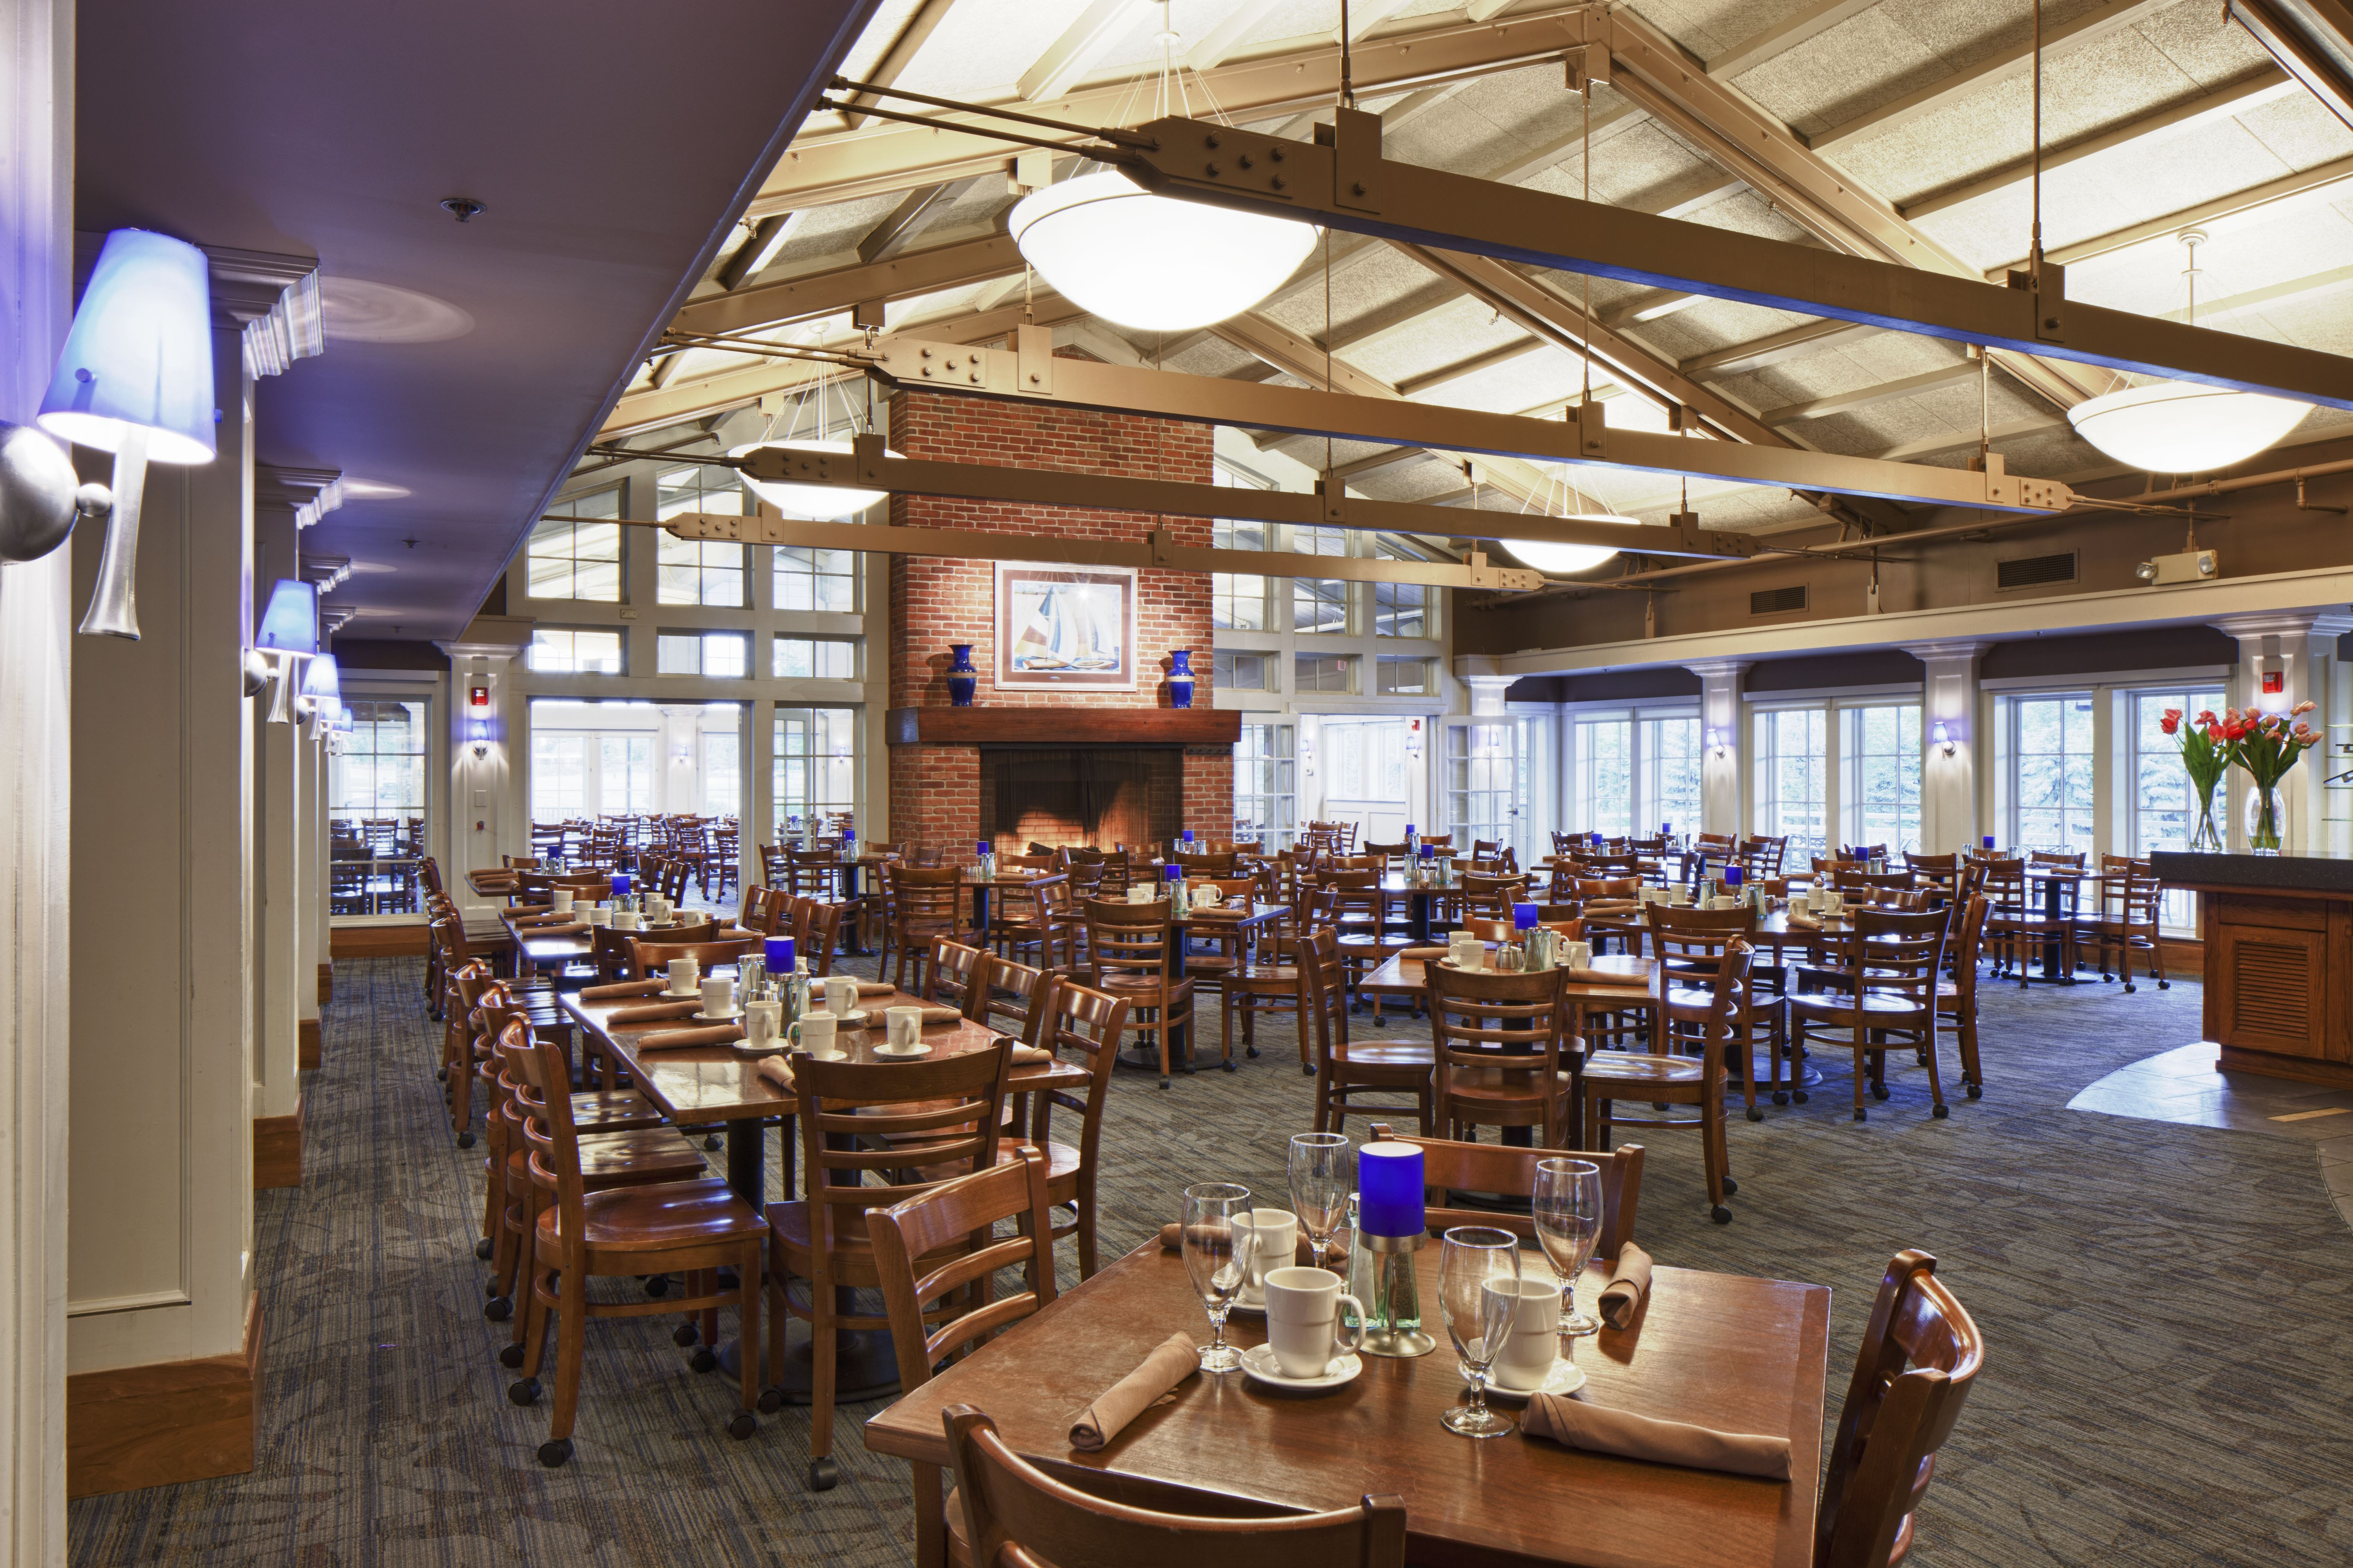 Enjoy A Delicious Meal In Our Ohio Dining Room